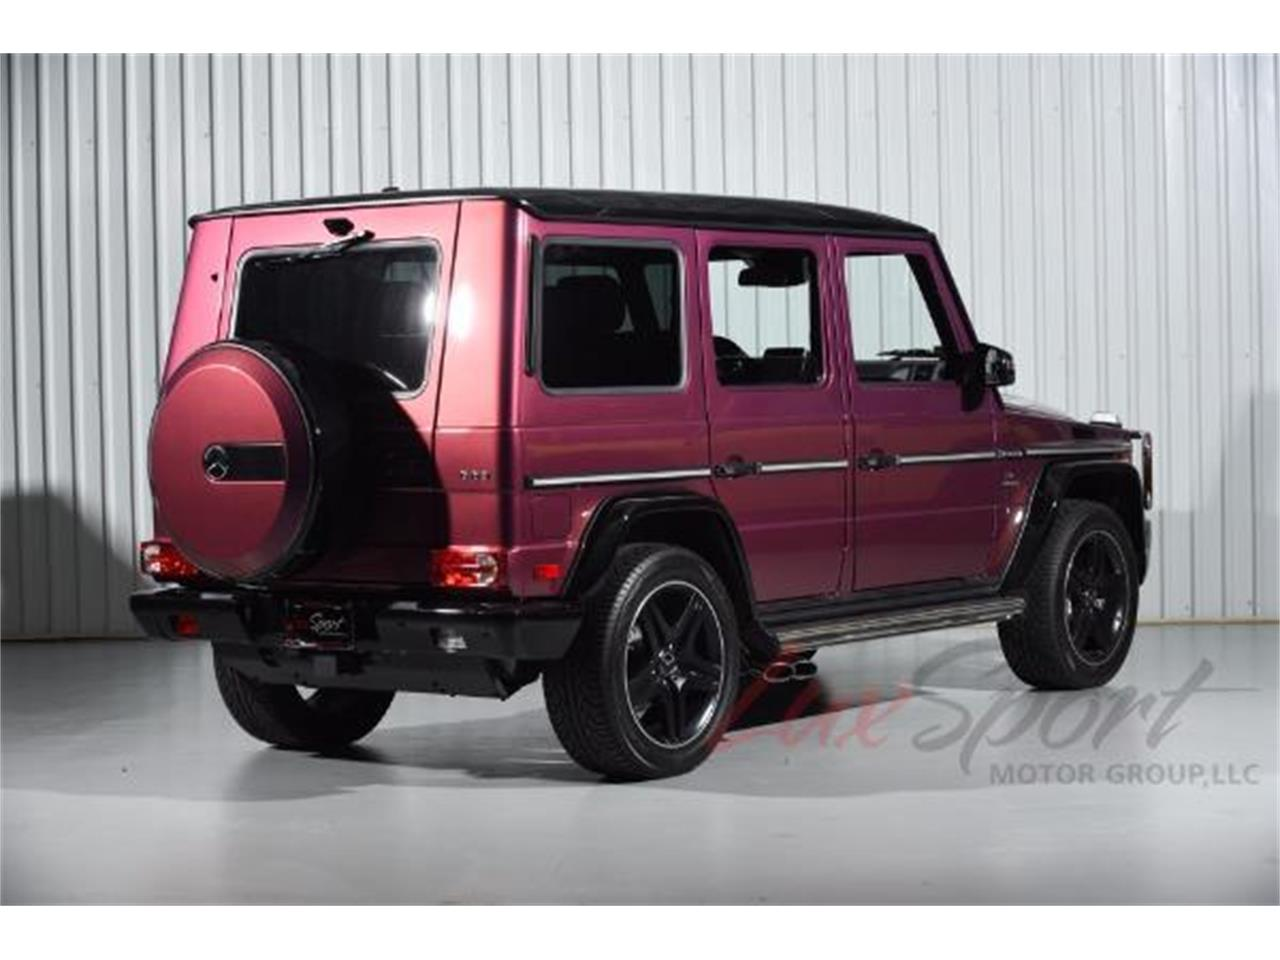 Large Picture of 2016 Mercedes-Benz G63 located in New Hyde Park New York Auction Vehicle Offered by LuxSport Motor Group, LLC - MO0I